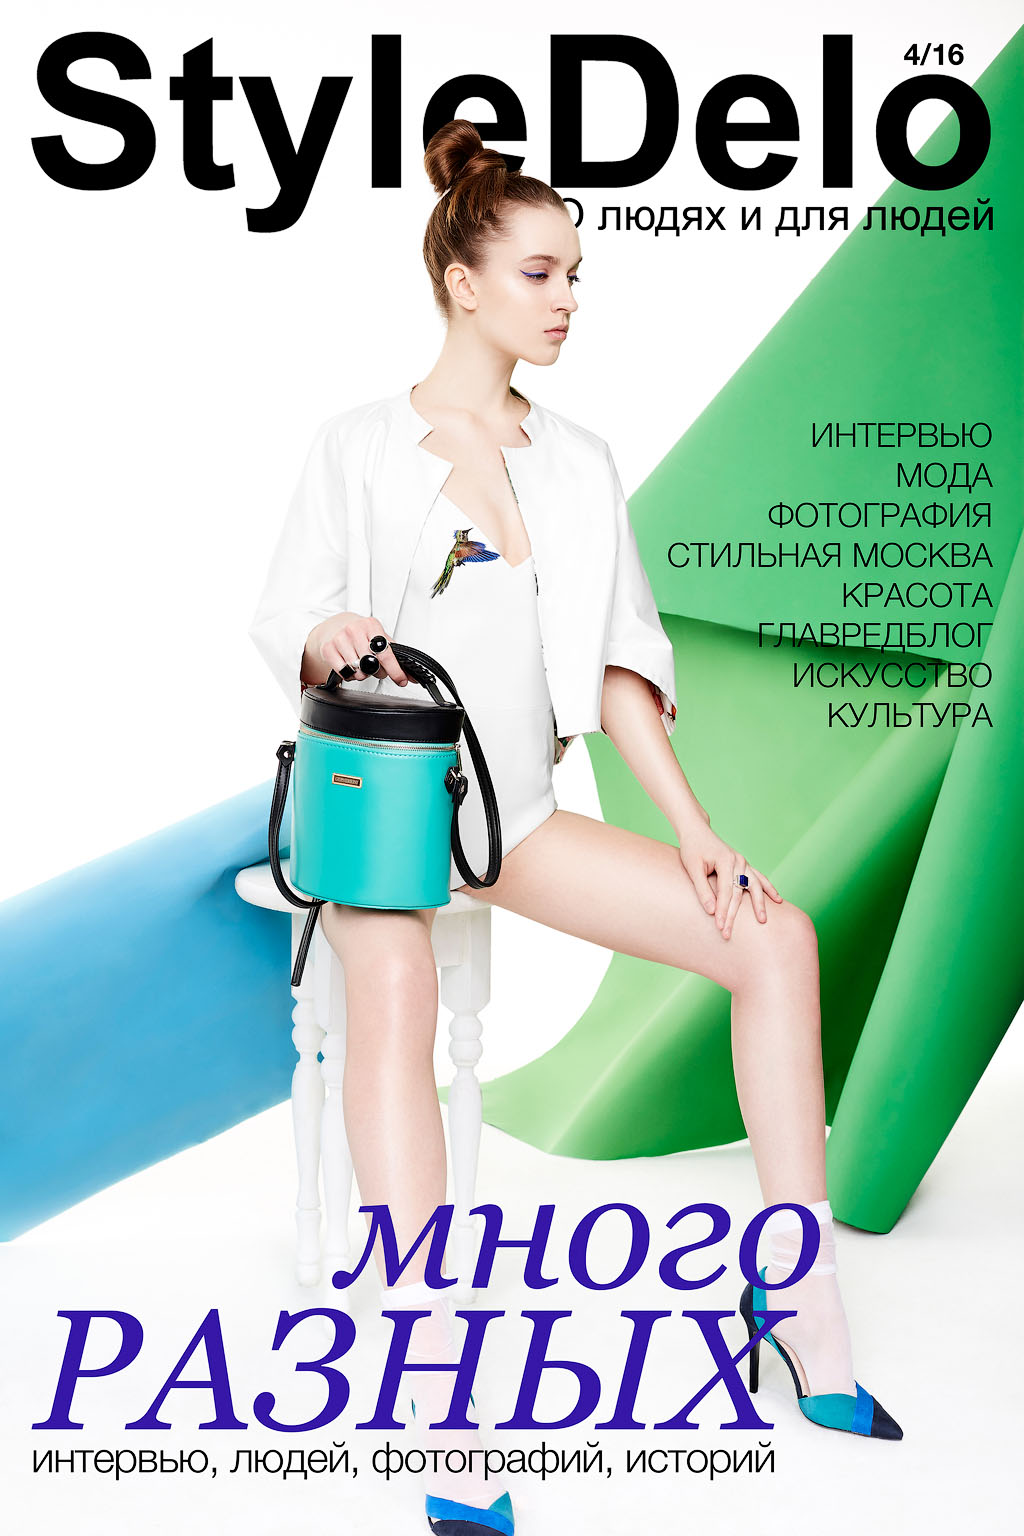 a_splash_of_color_cover_styledelo_evgeniy_sorbo_photographer_001.jpg